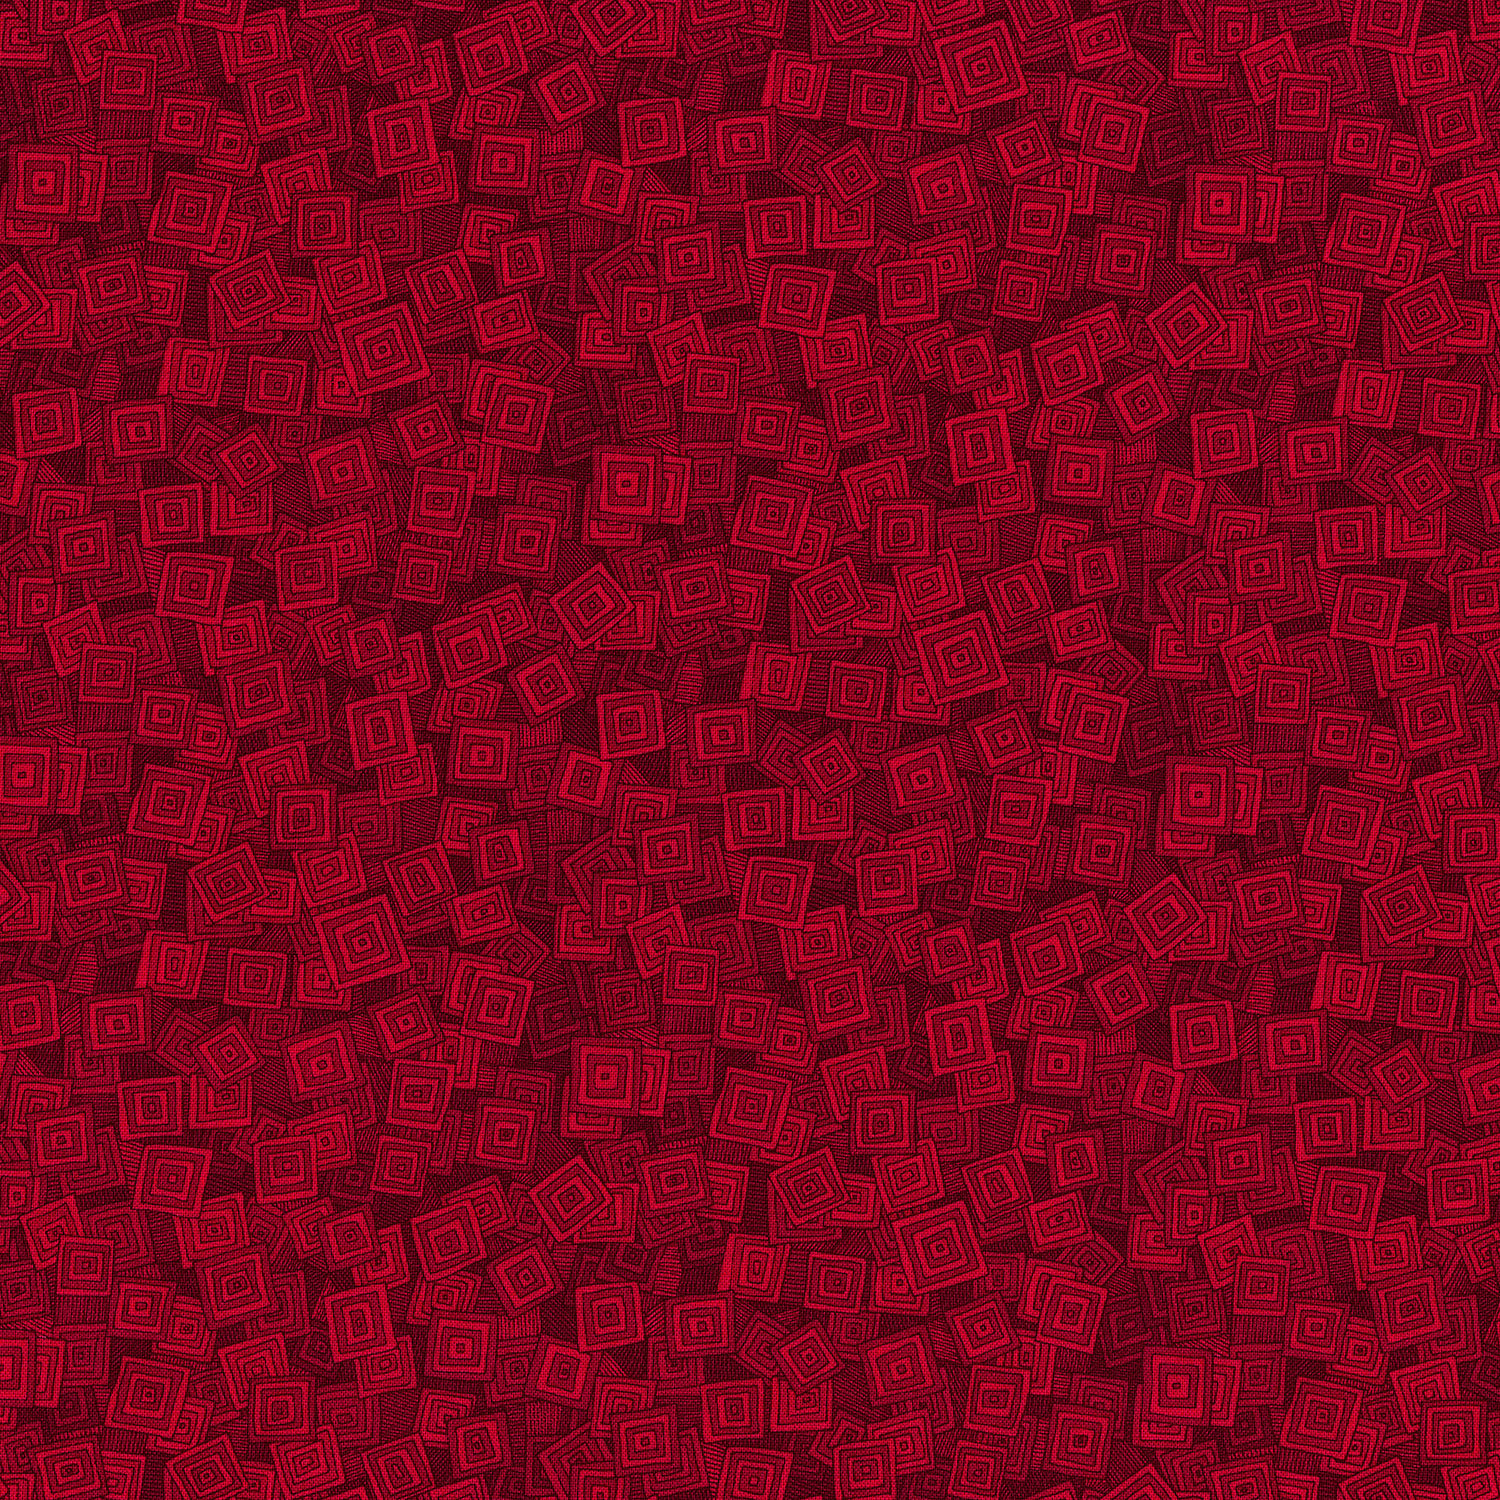 3215-006 OVERLAPPING SQUARES-WILD STRAWBERRY